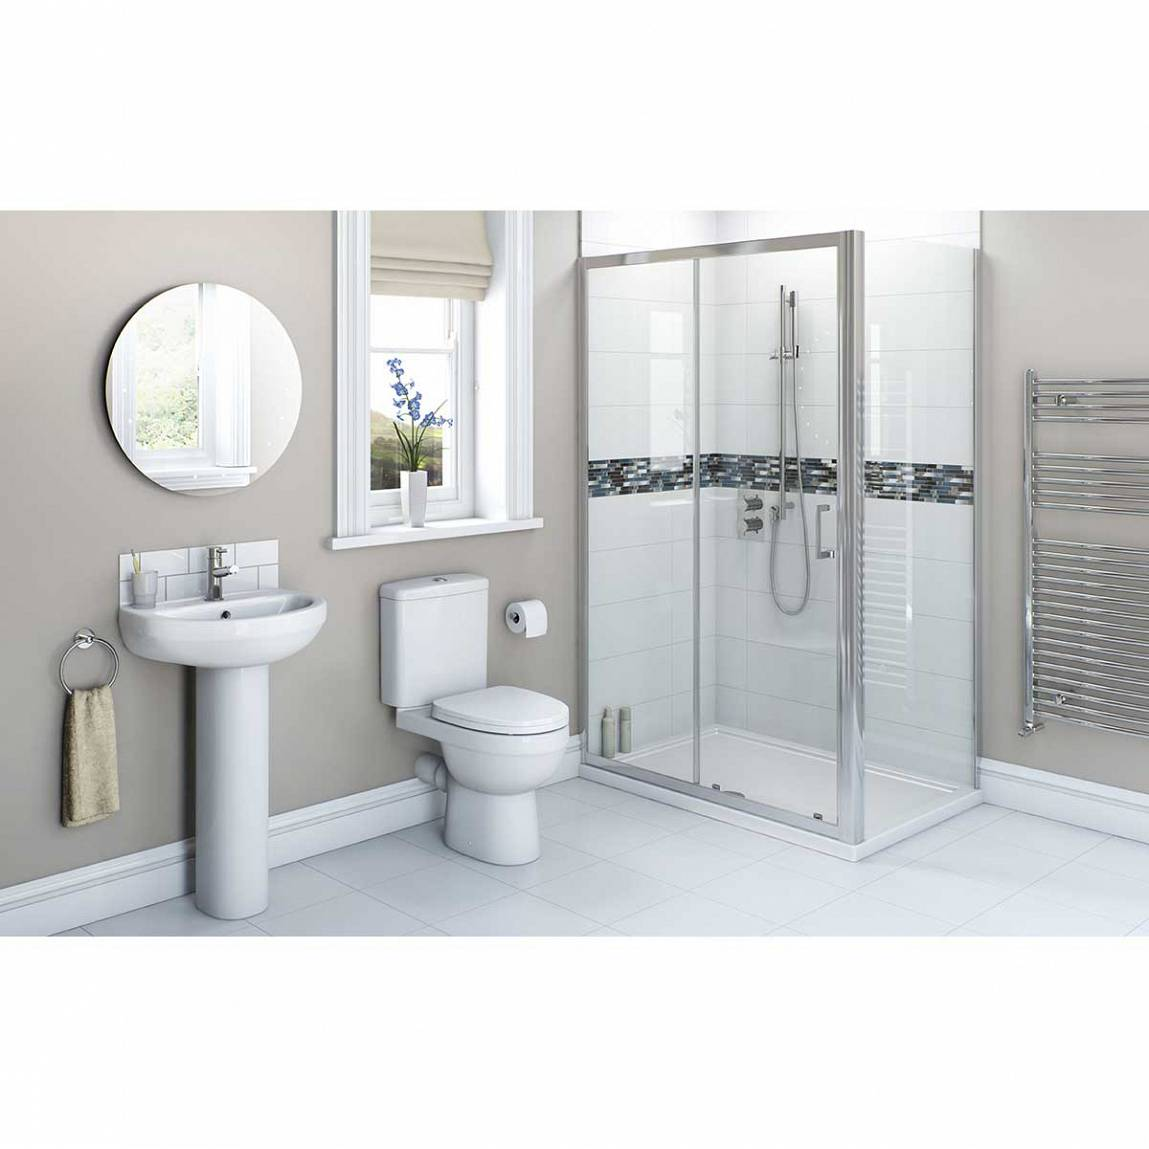 Image of Energy Bathroom set with 1200x900 Sliding Enclosure